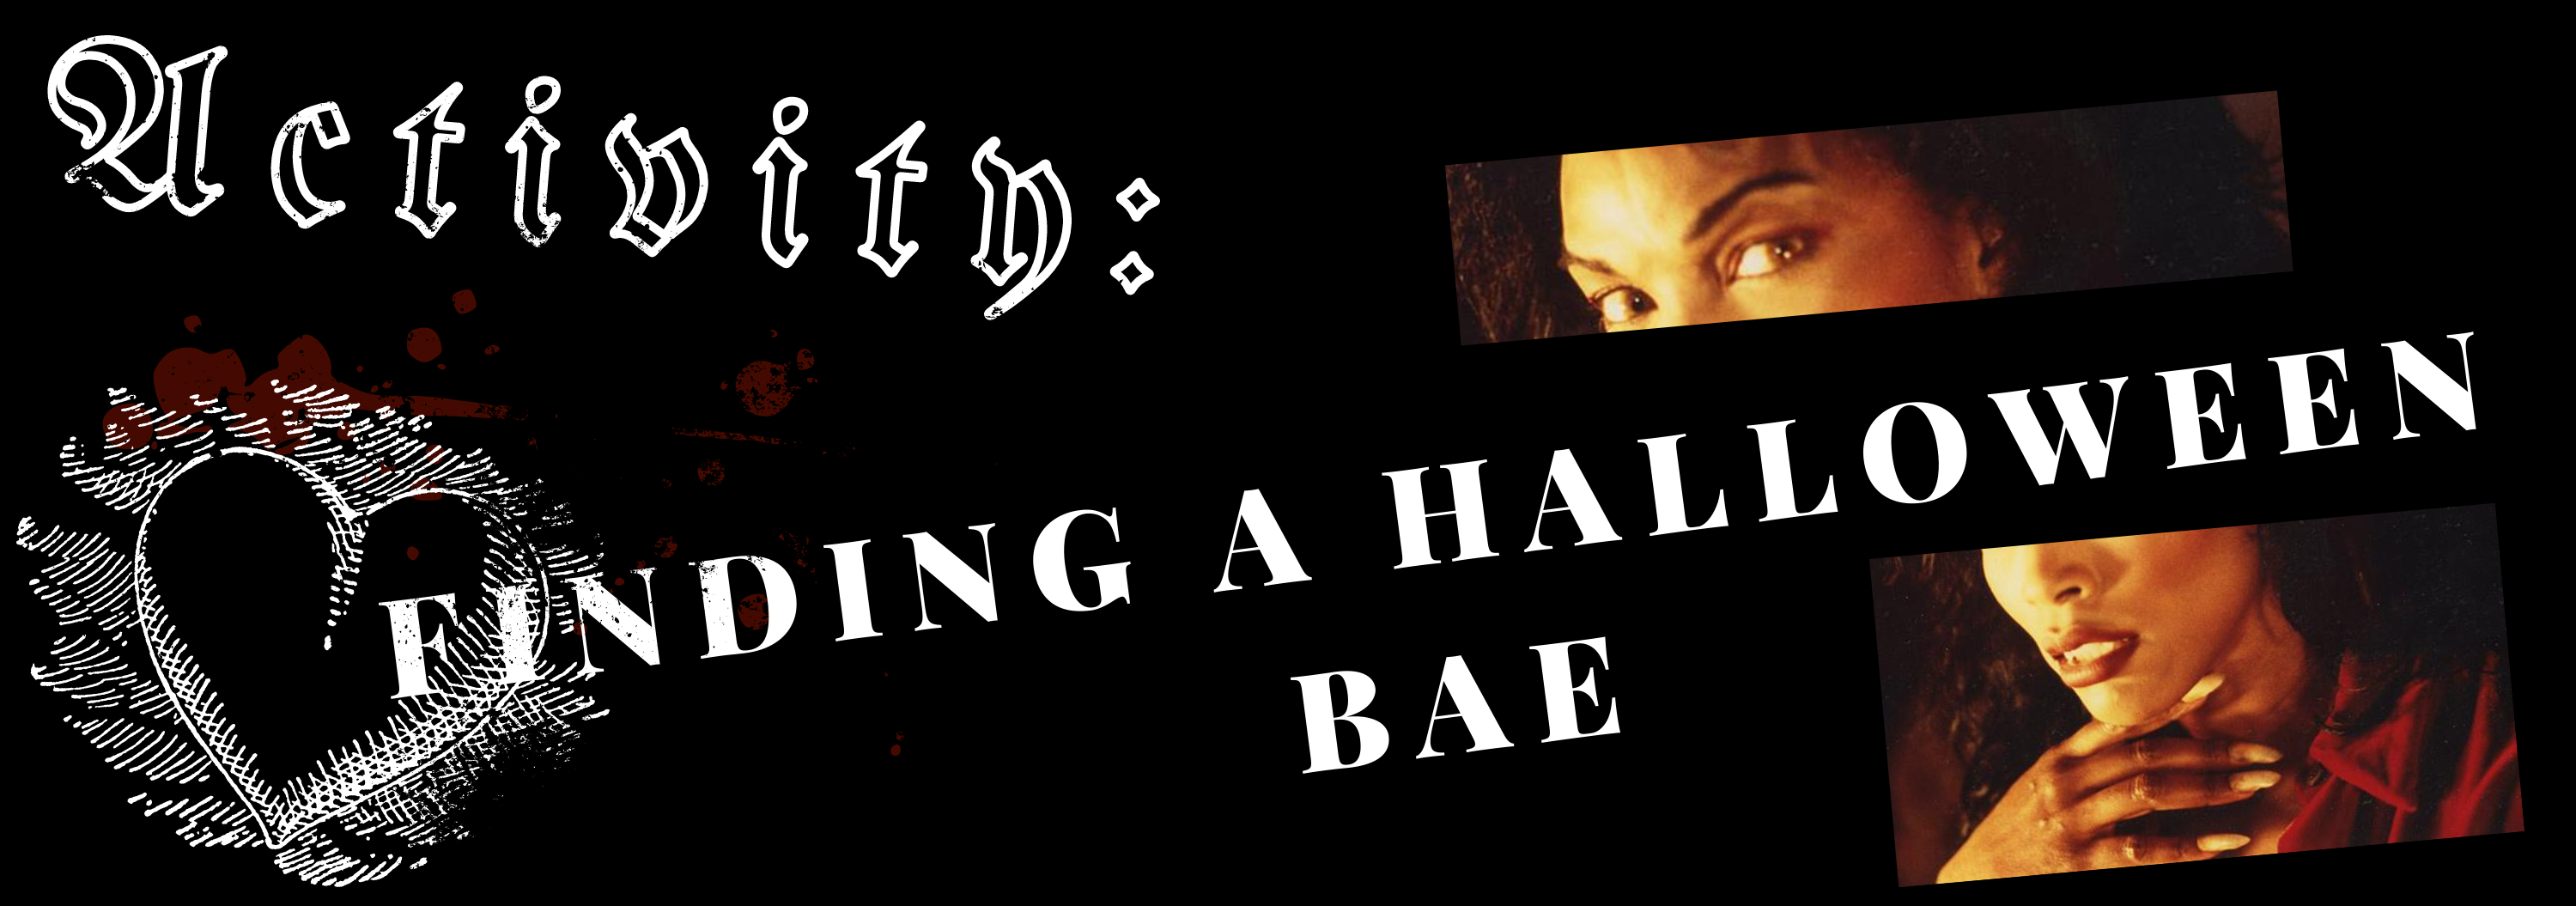 A black, white, and red graphic featuring the words Activity and Finding a Halloween Bae, with a heart illustration and a screenshot from the film A Vampire in Brooklyn.